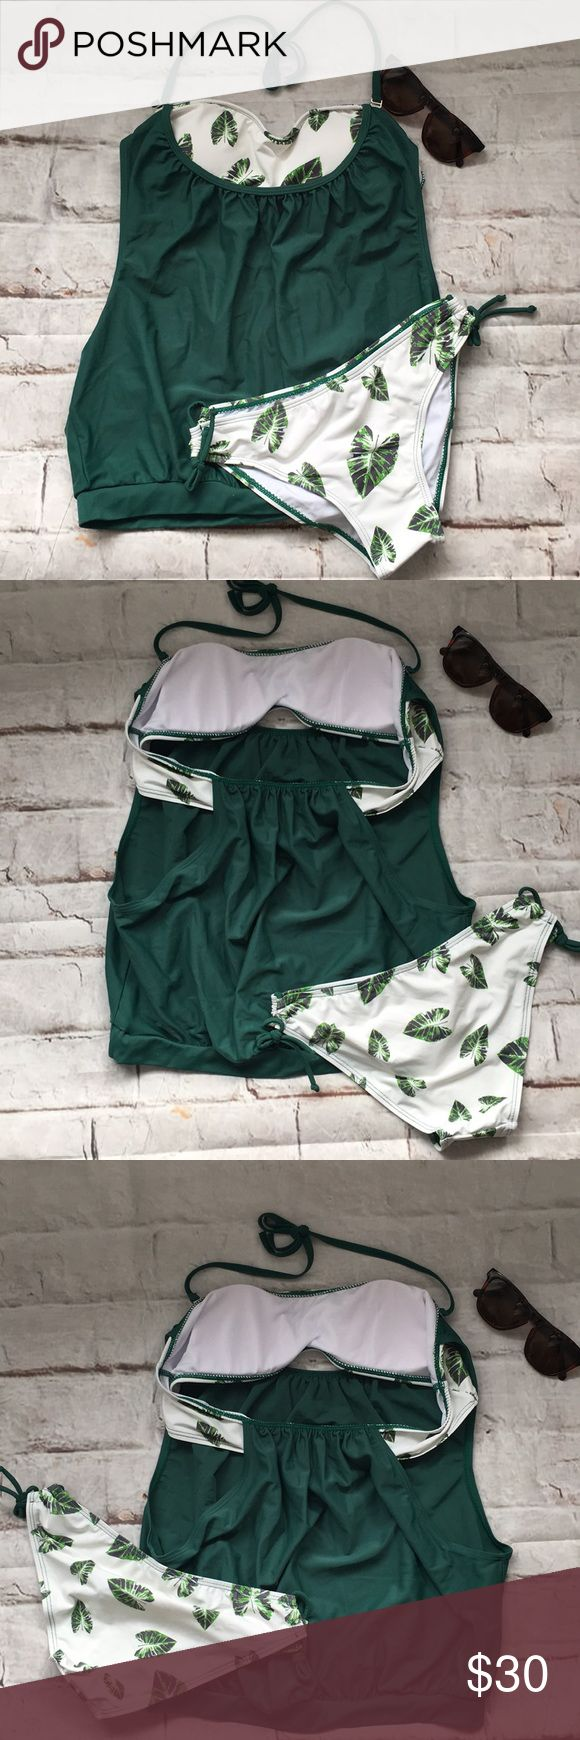 Tankini Attached Bandeau Bikini Bottom Green White Swim Suit Tankini 2Pc Green & White Floral Bandeau Fit Bikini Top With Cut Out Sides On Top String Tie Bottom  NWOT Liner Intact  Size L Feilima Swim